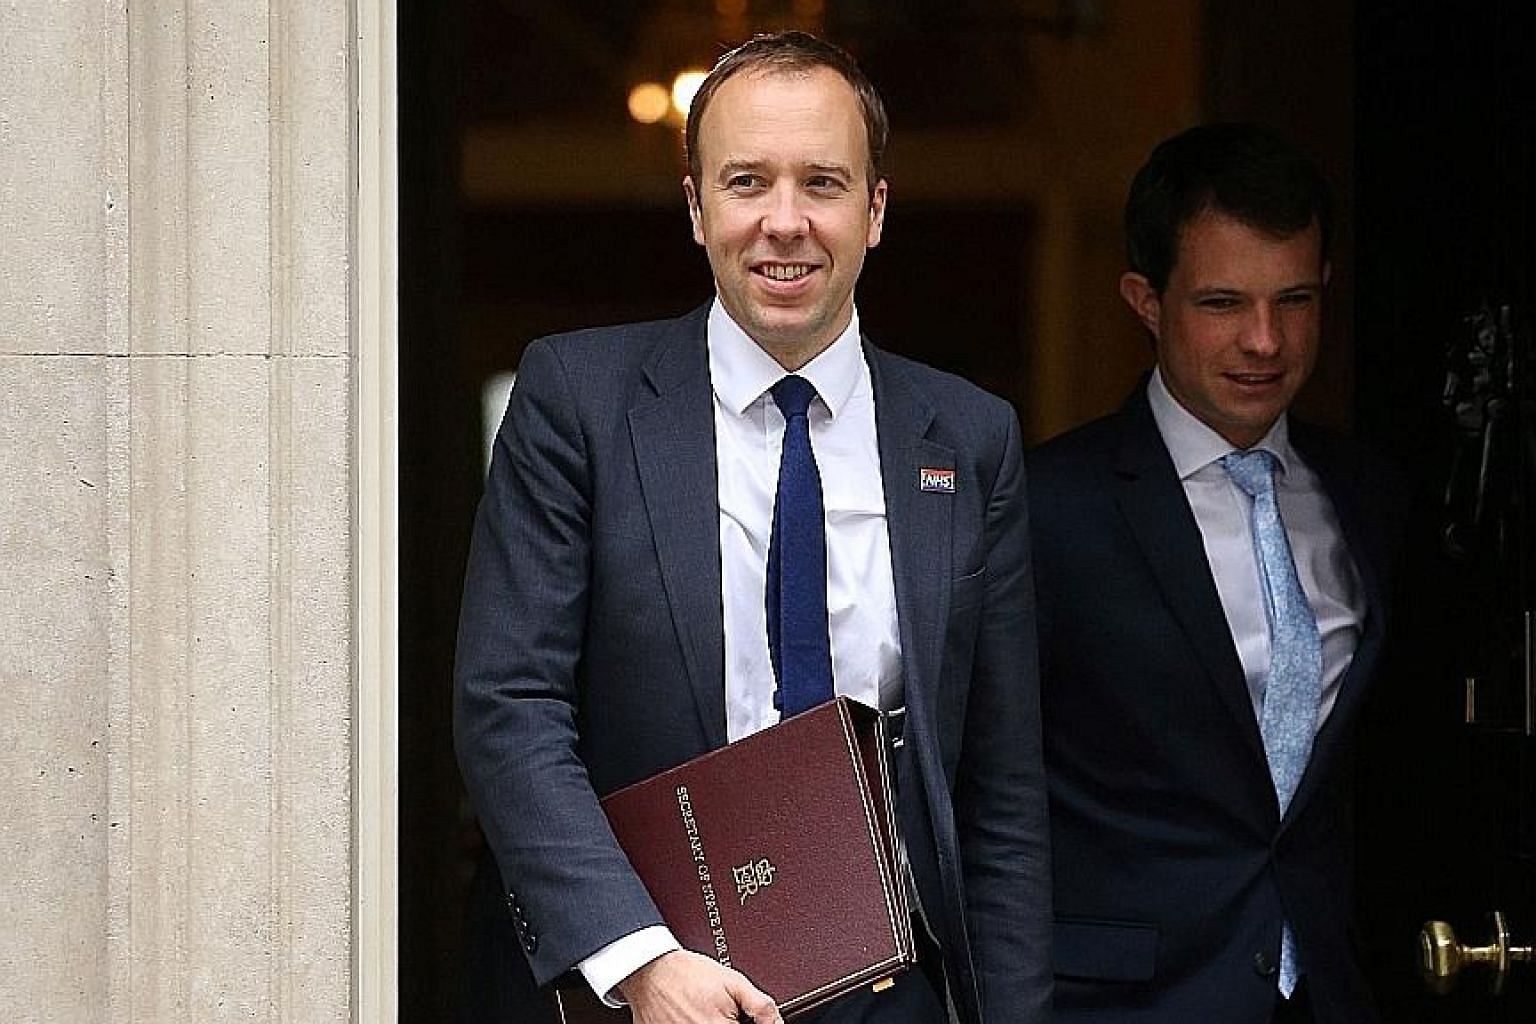 British Health Minister Matt Hancock leaving 10 Downing Street on Tuesday, after a weekly Cabinet meeting. He quit the battle to succeed Mrs Theresa May as Conservative Party leader yesterday. PHOTO: AGENCE FRANCE-PRESSE